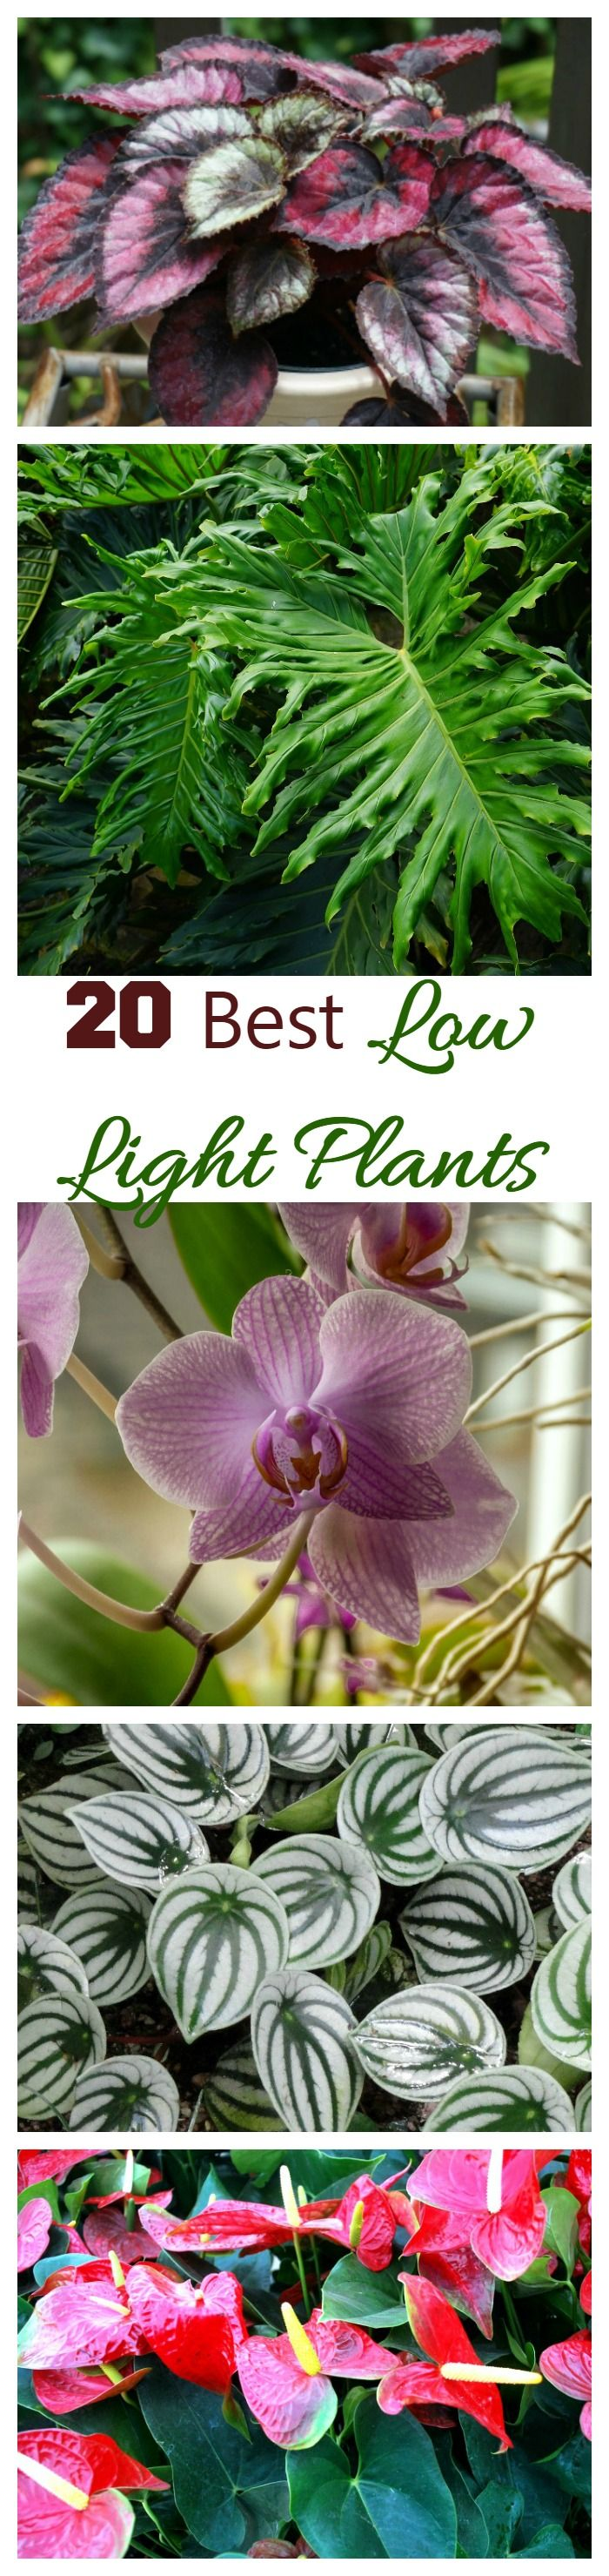 Low Light Indoor Plants  House Plants That Thrive in Lower Light is part of Plants, Backyard plants, Indoor flowers, Indoor plants, House plants, Shade plants - Do you have few windors and dark corners in your home  Grow these Low Light Indoor Plants all thrive in low to medium light conditions  They will thrive!